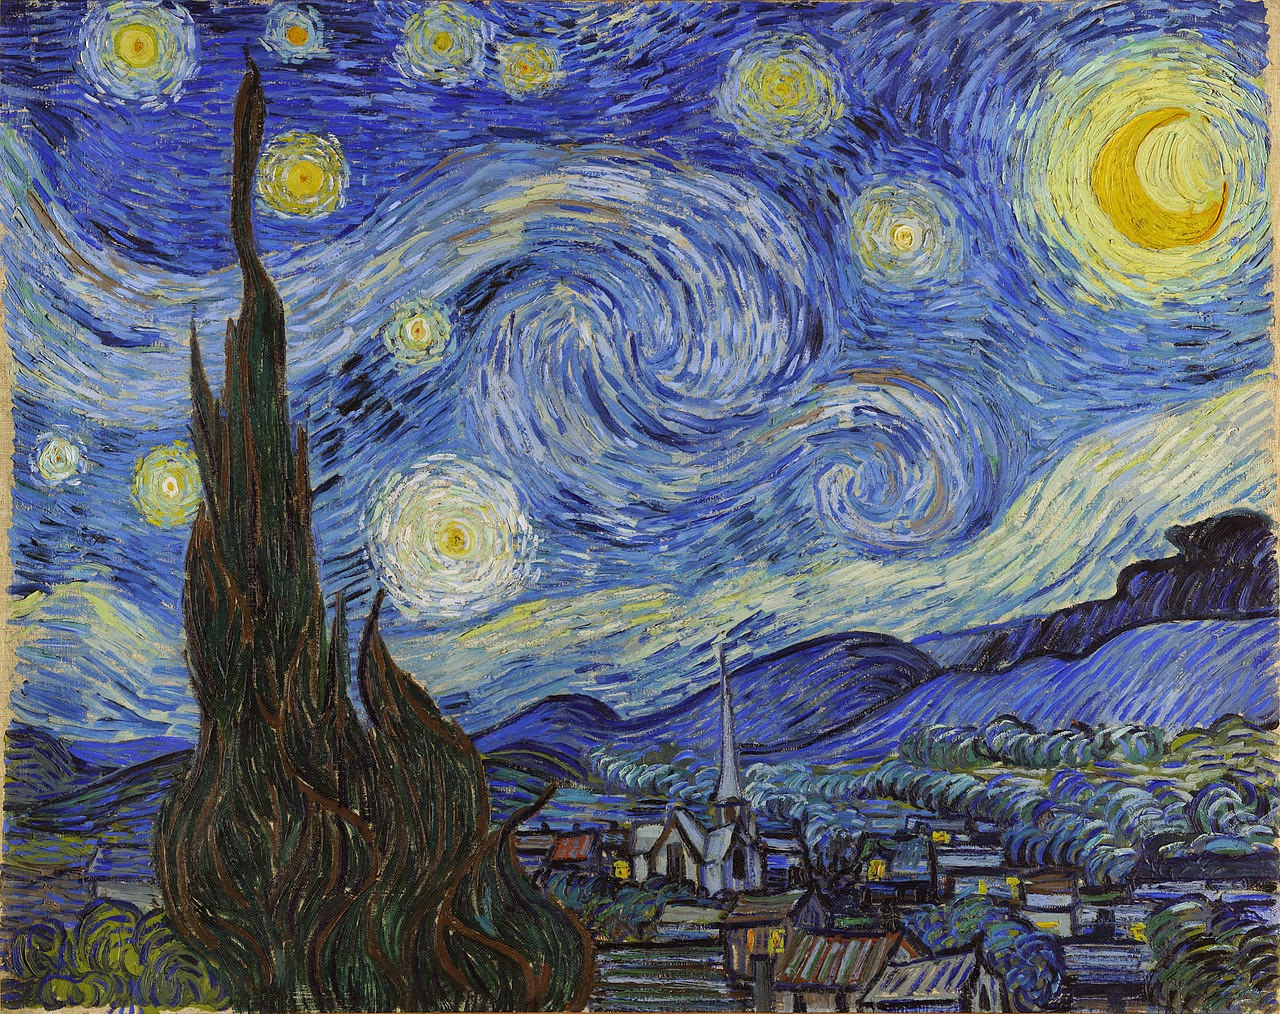 van gogh s starry night and salvador How is it that a squirrel reaching for a walnut can summon the sistine chapel   the whirling panorama of van gogh's starry night was painted as much from  imagination as  salvador dali's the persistence of memory.